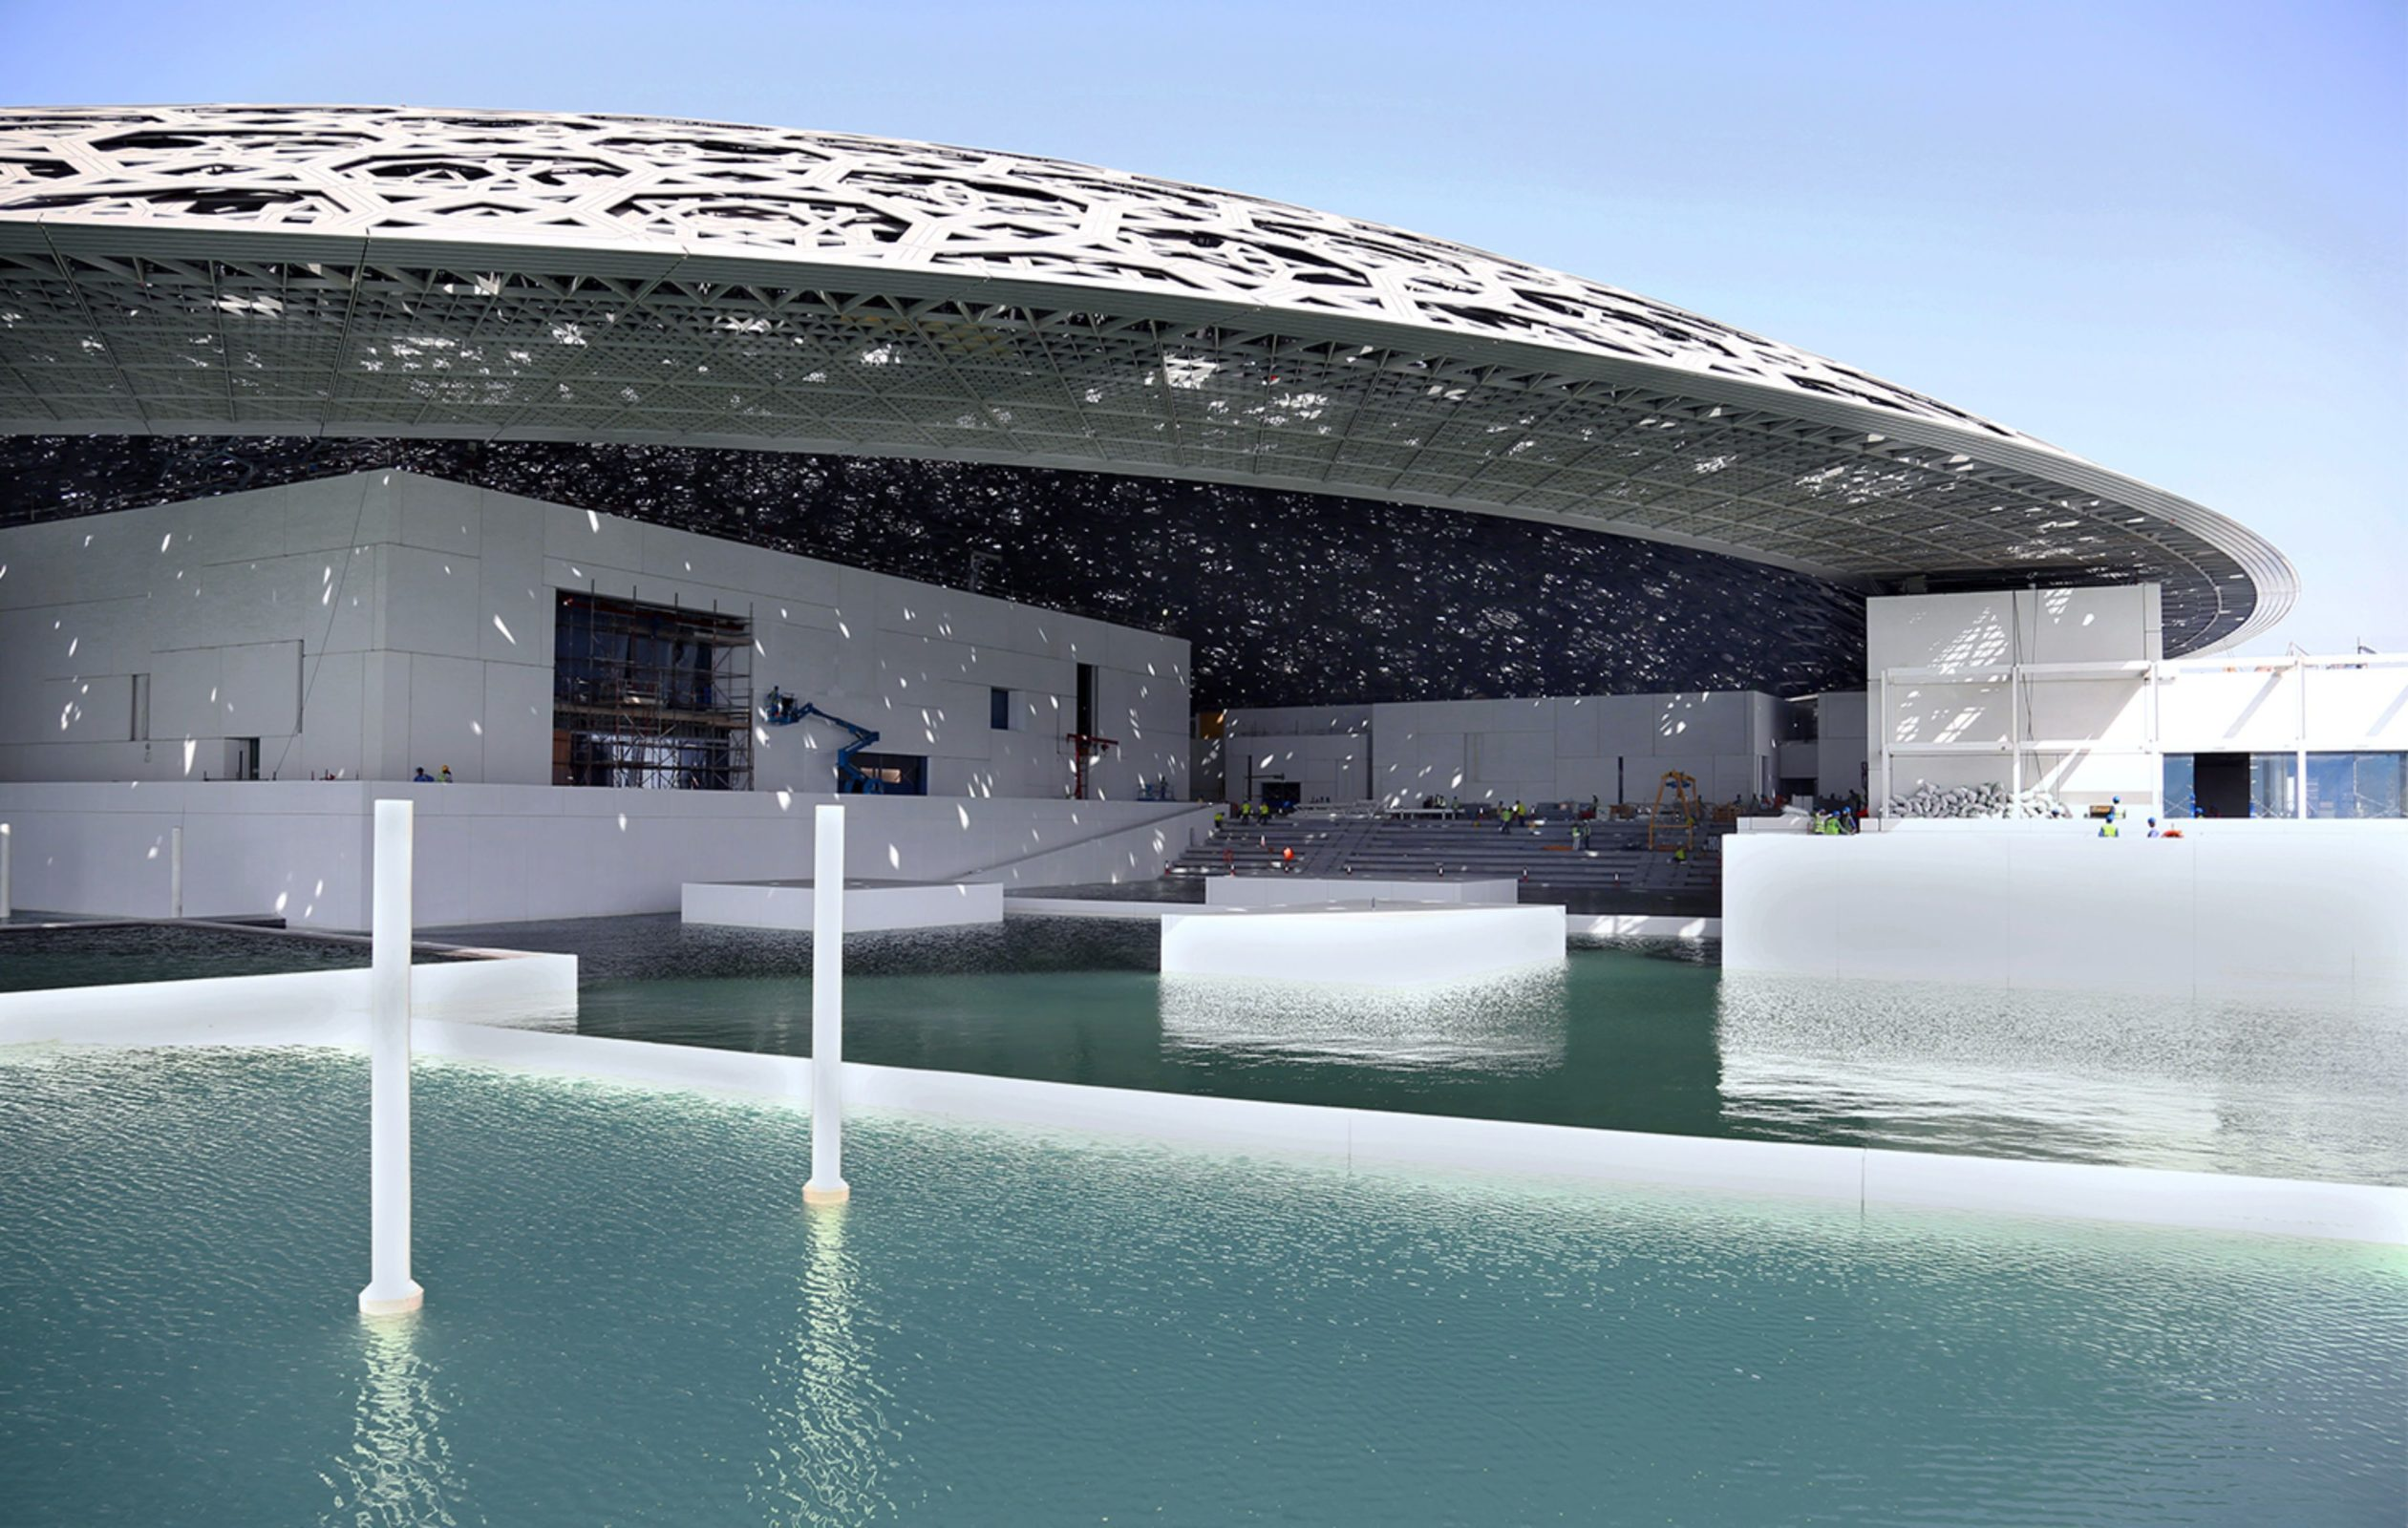 A handout picture taken on May 24, 2016, and made available on June 15, 2016, by Abu Dhabi's Tourism Development and Investment Company (TDIC) shows Abu Dhabi's Louvre museum, designed by French architect Jean Nouvel, surrounded by sea water. The museum has been surrounded by sea water in a major step towards completion of the ambitious project, TDIC said on June 15, 2016. The contractor has begun removing temporary sea protection walls used during the main construction phase, allowing the